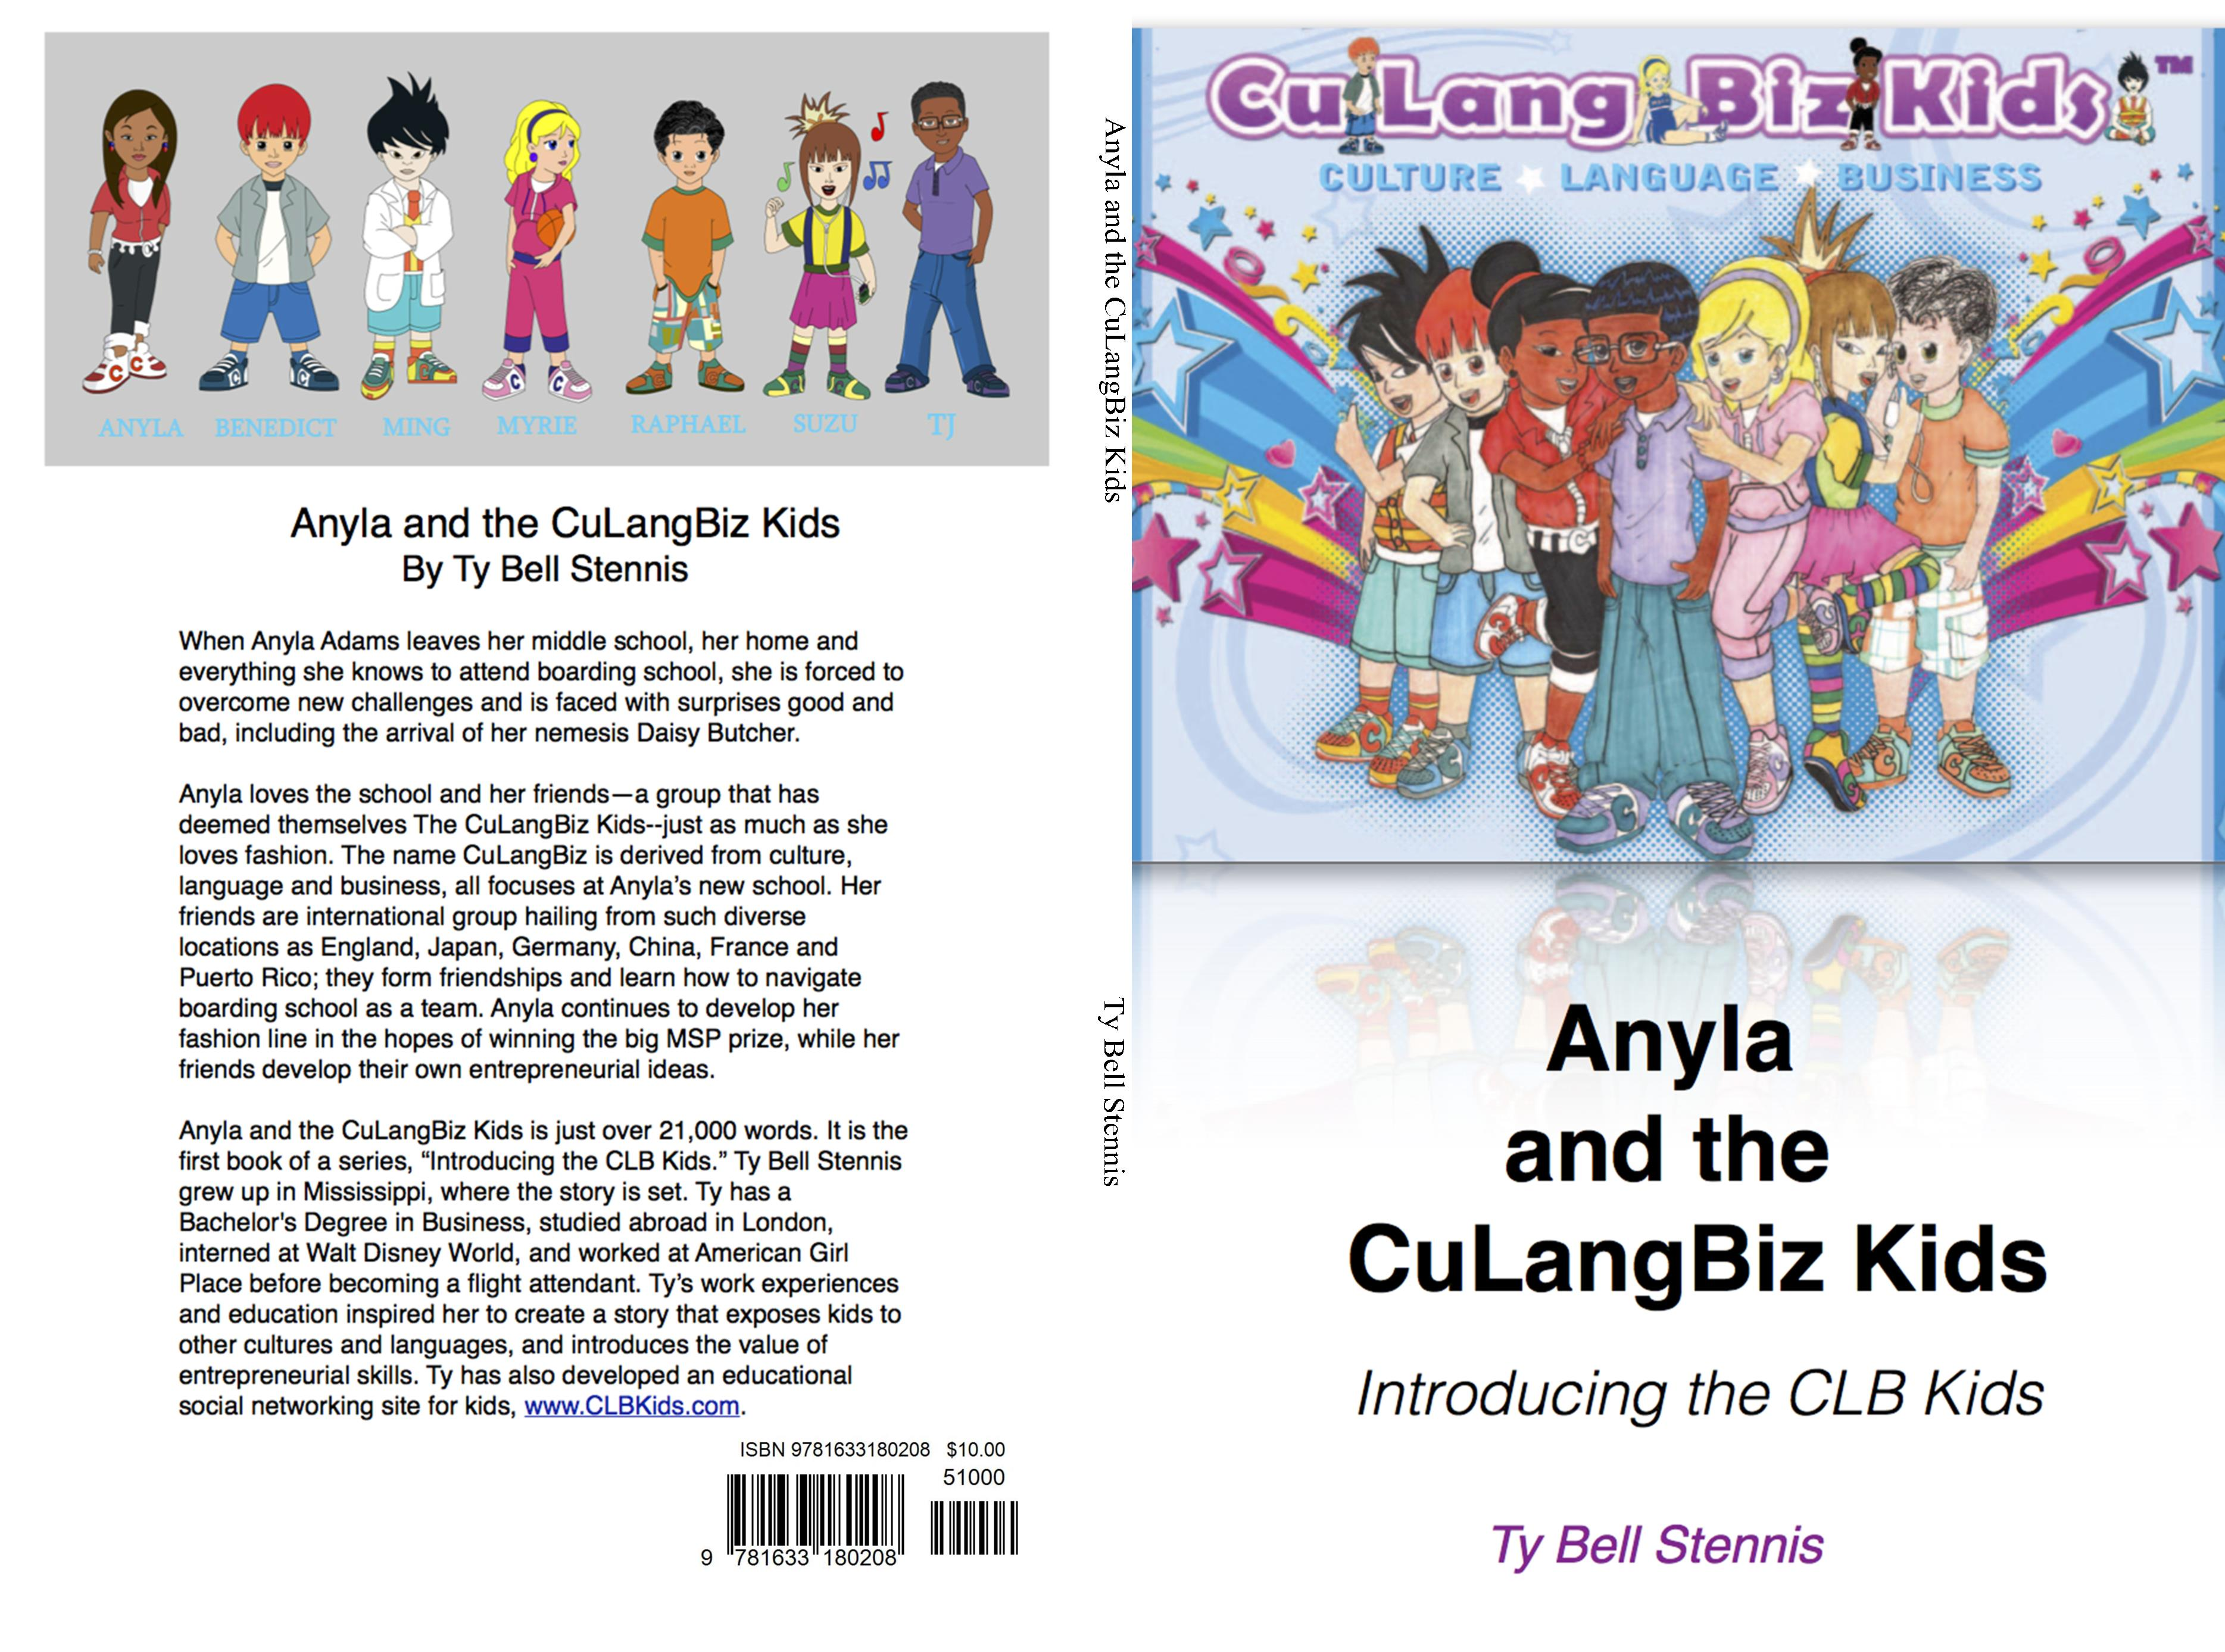 Anyla and the CuLangBiz Kids cover image